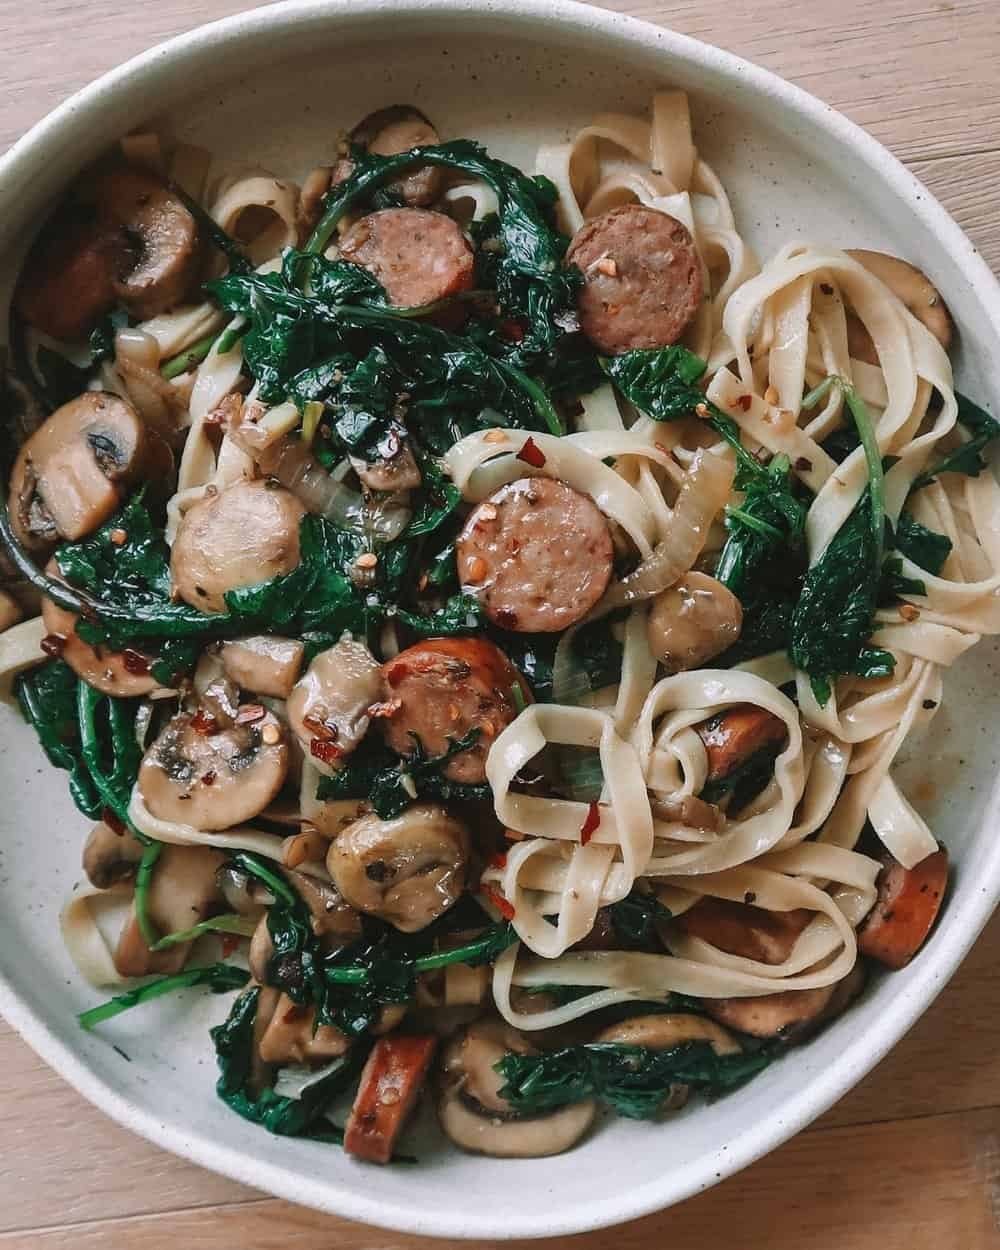 ONE POT SPICY SAUSAGE & BABY KALE FETTUCCINE - INGREDIENTSone large shallotthree cloves garlic1 package of sausage of choice1 tb Italian seasoning3 tb avocado oil2 cups baby kalejuice or one lemon1 package sliced white mushroomscrushed red pepper to tastepasta of choice (I used @capellos fettuccine)